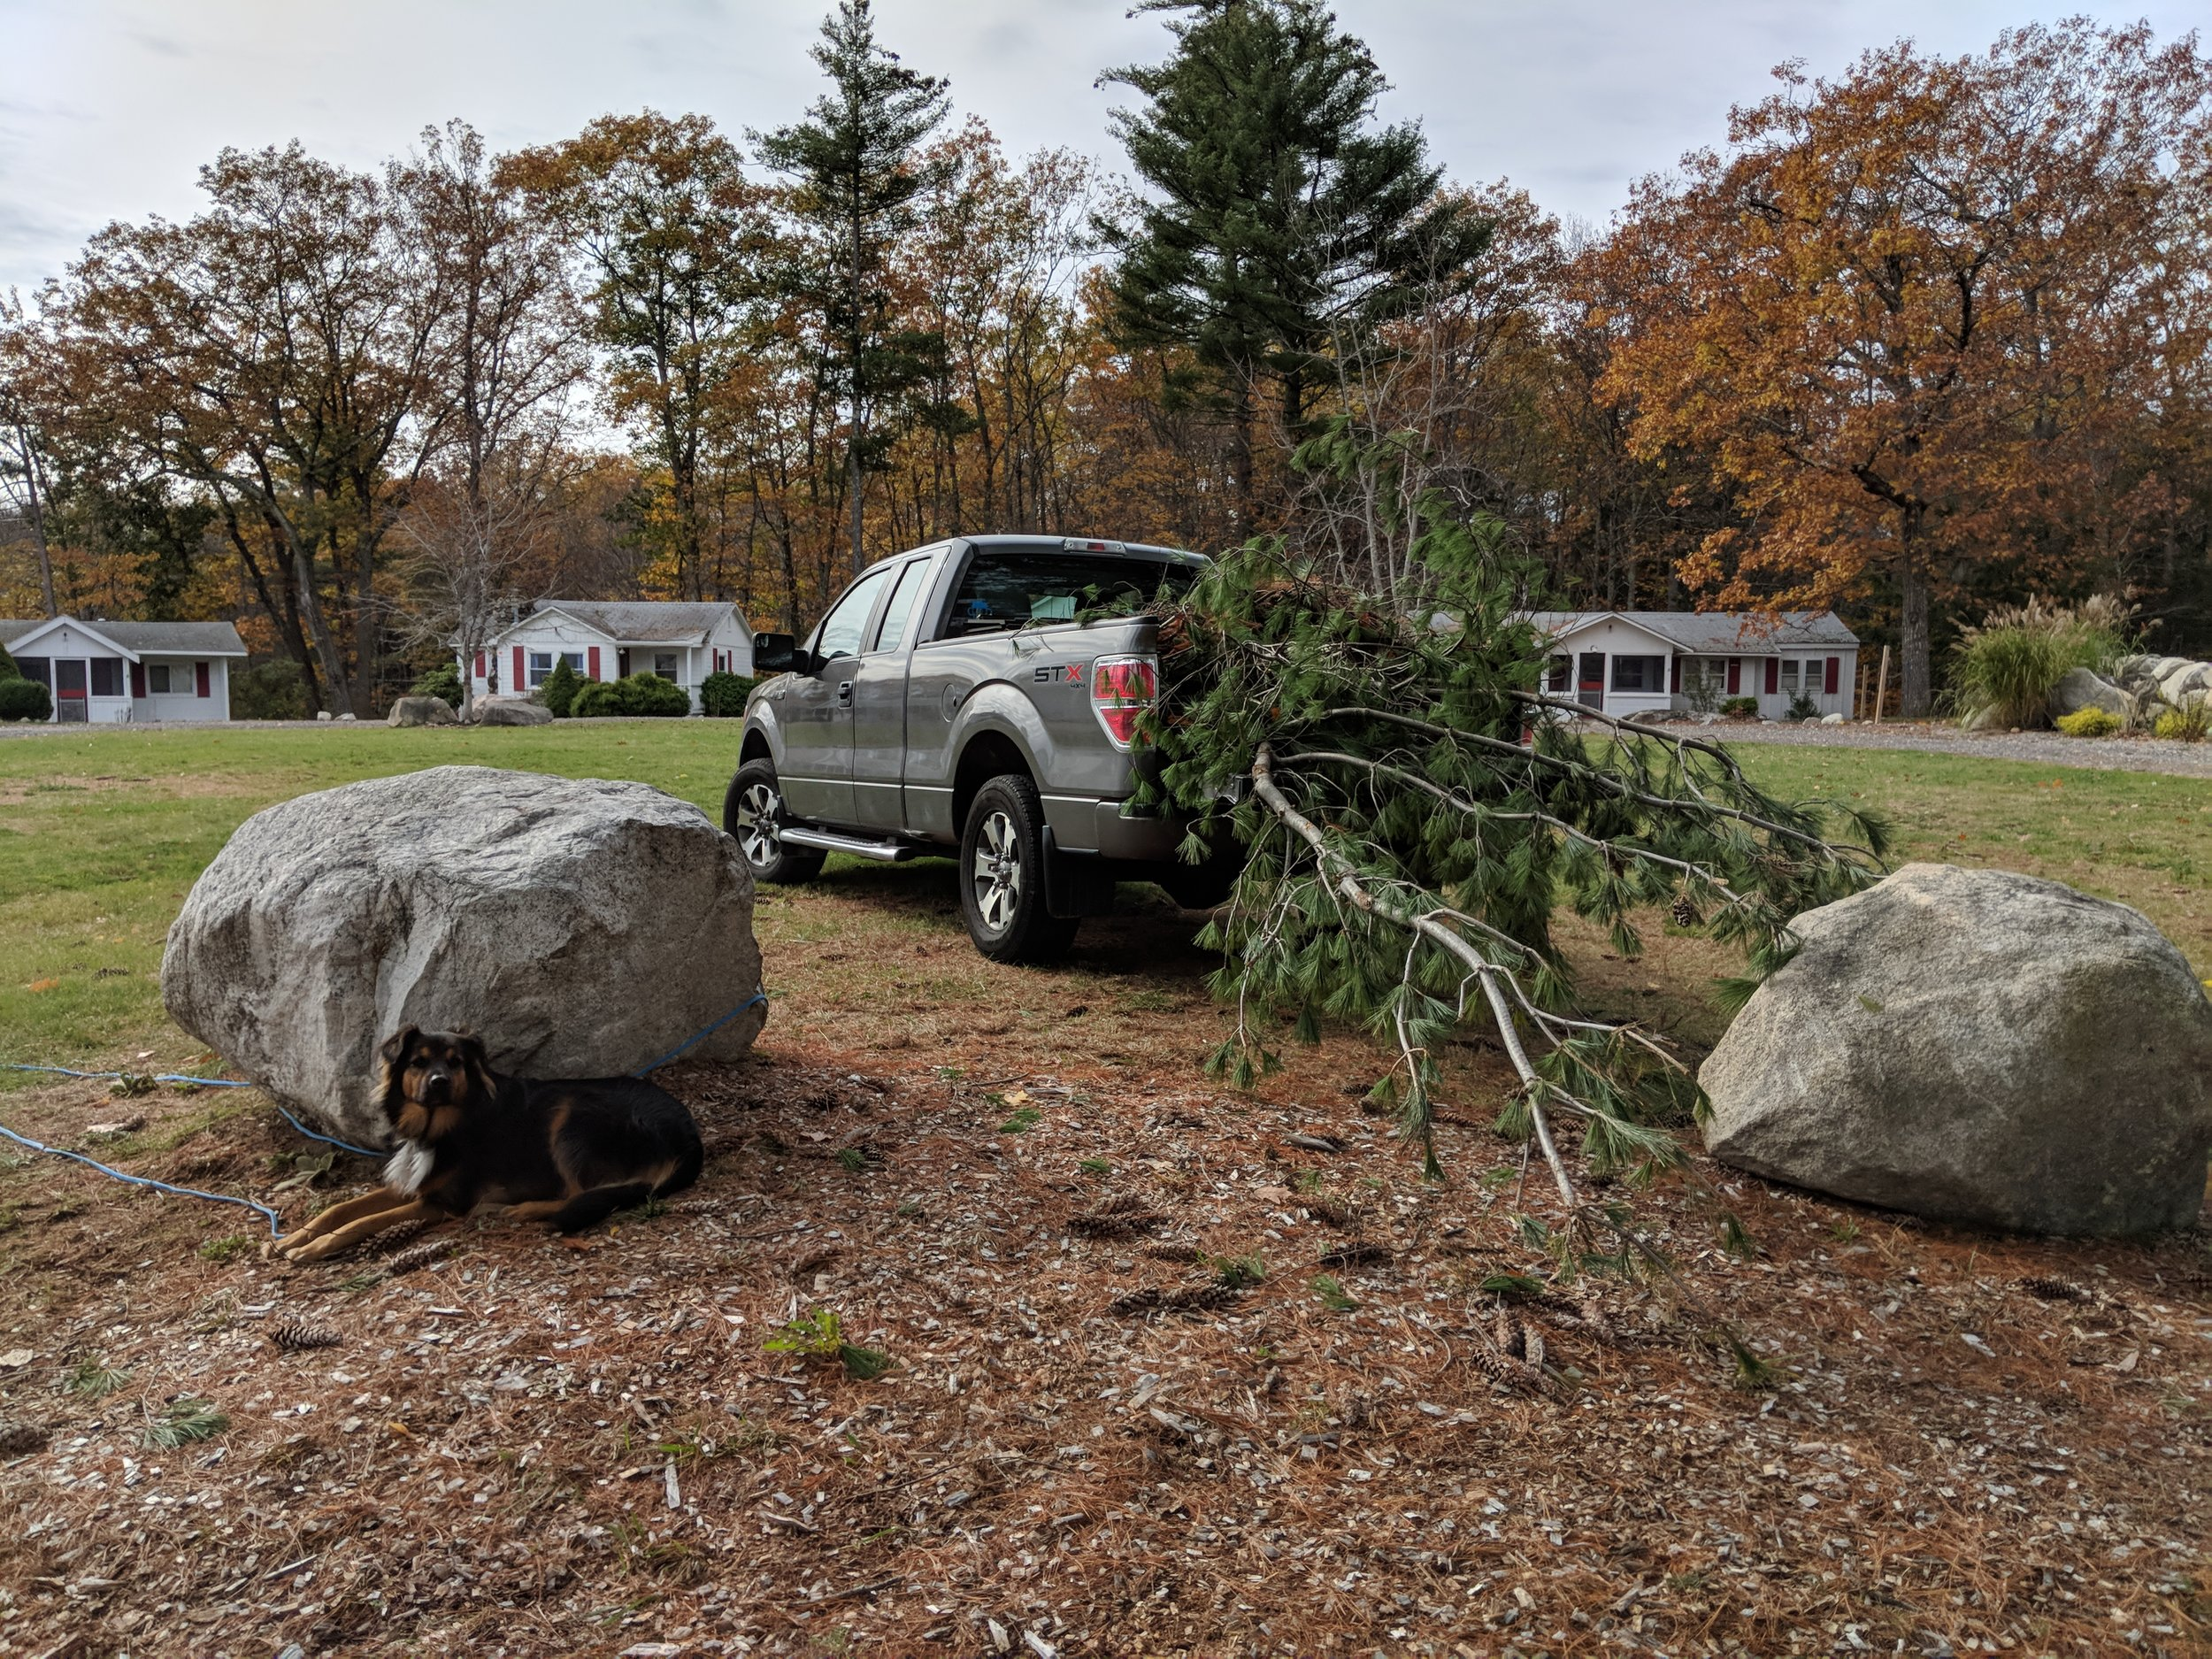 Cleaning up the summer camp property after a big storm!